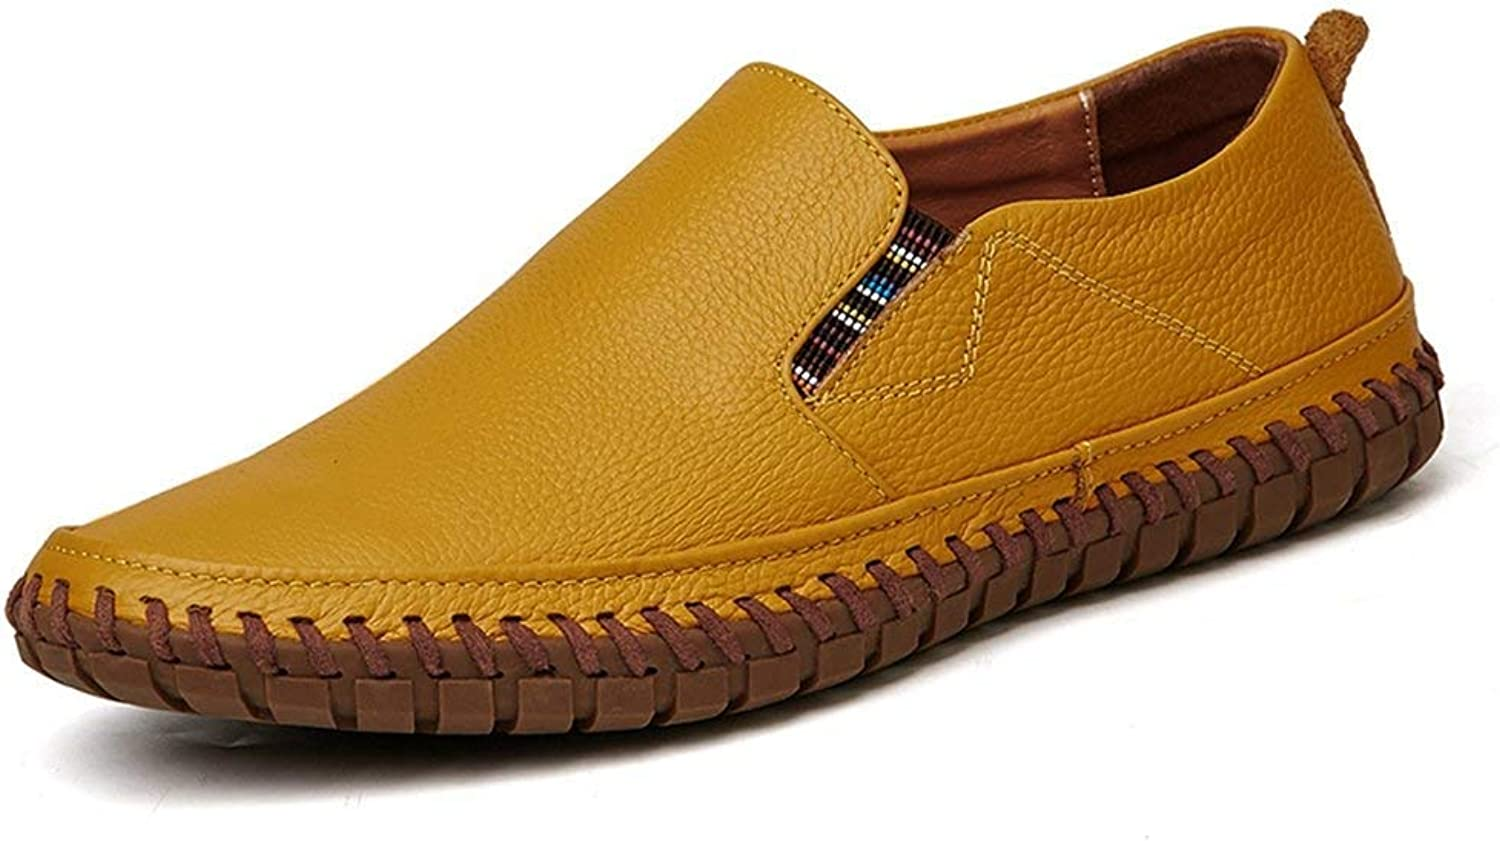 ZHRUI Men Genuine Leather Flats Handmade Breathable Causal Slip-on Business Lazy Driving shoes (color   Yellow, Size   9.5UK=44EU)